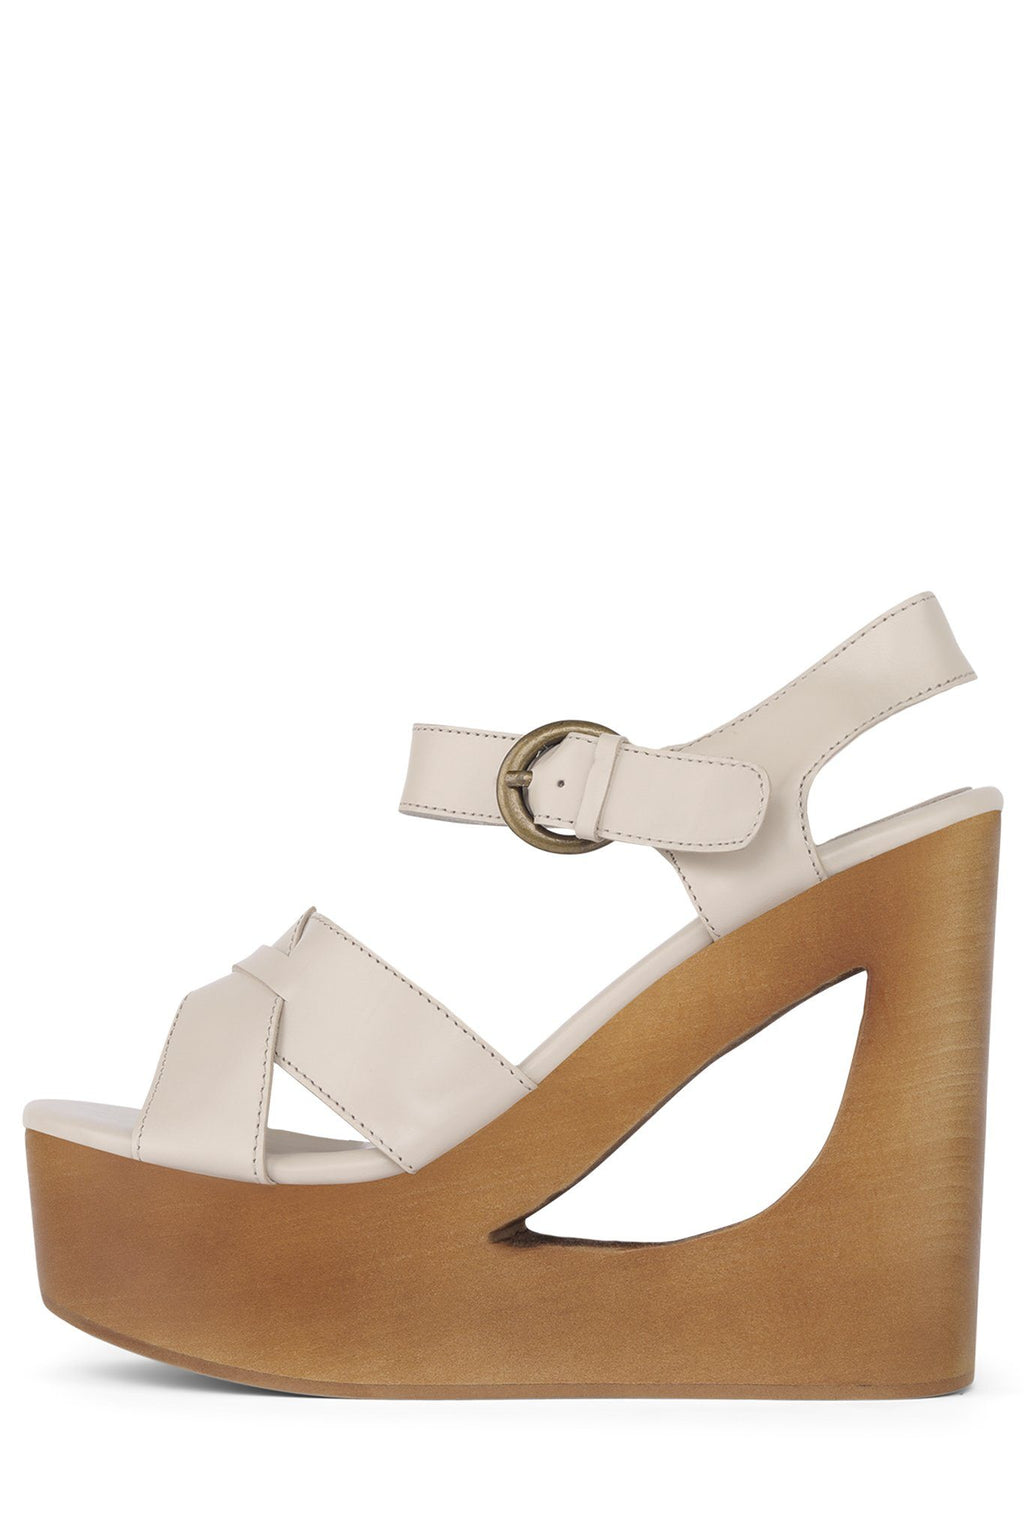 HENDRIXX Wedge Sandal HS Natural 6